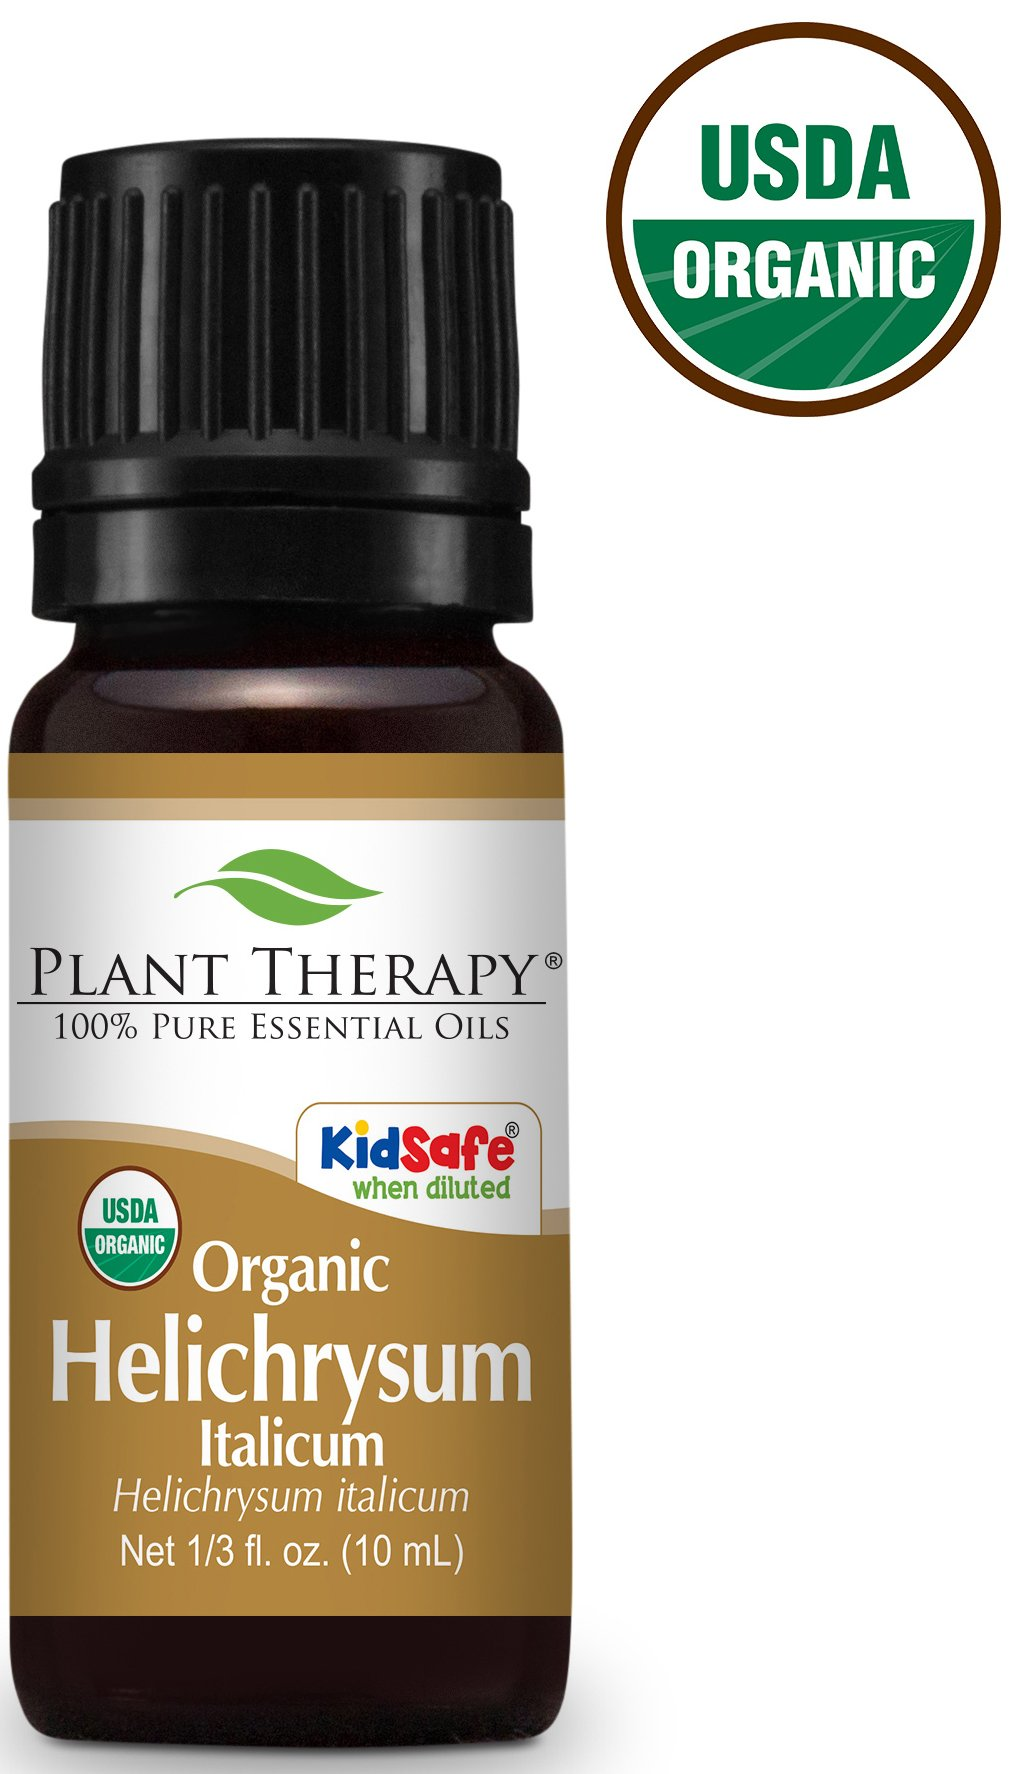 Plant Therapy Helichrysum Italicum Organic Essential Oil 10 mL (1/3 oz) 100% Pure, Undiluted, Therapeutic Grade